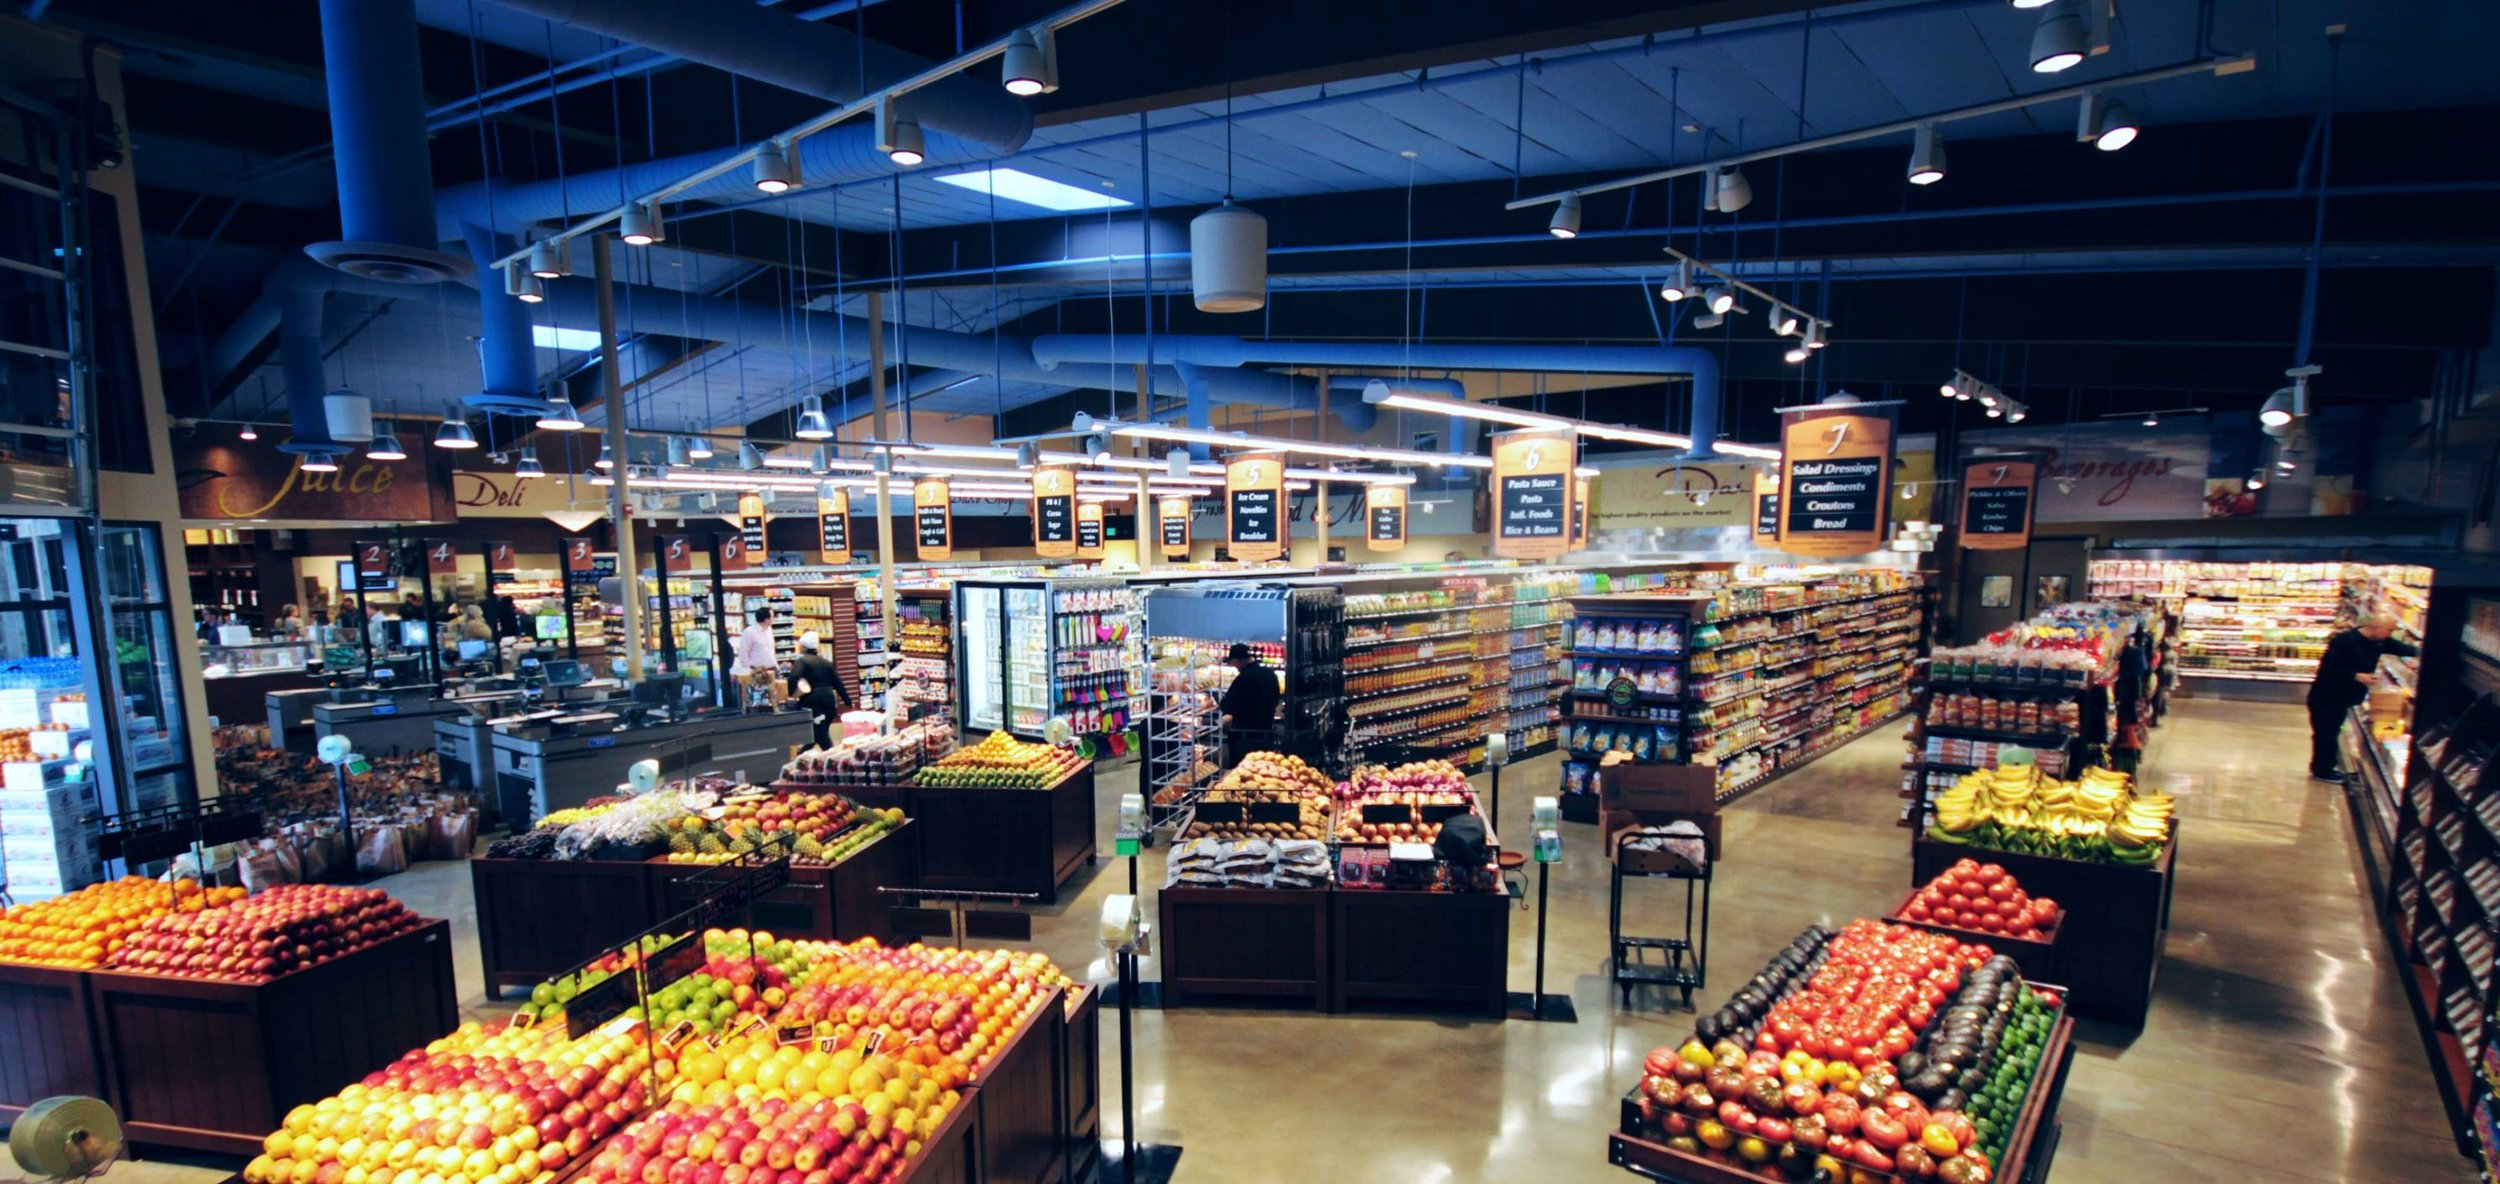 A picture of inside the market before we open our doors in the morning.jpg